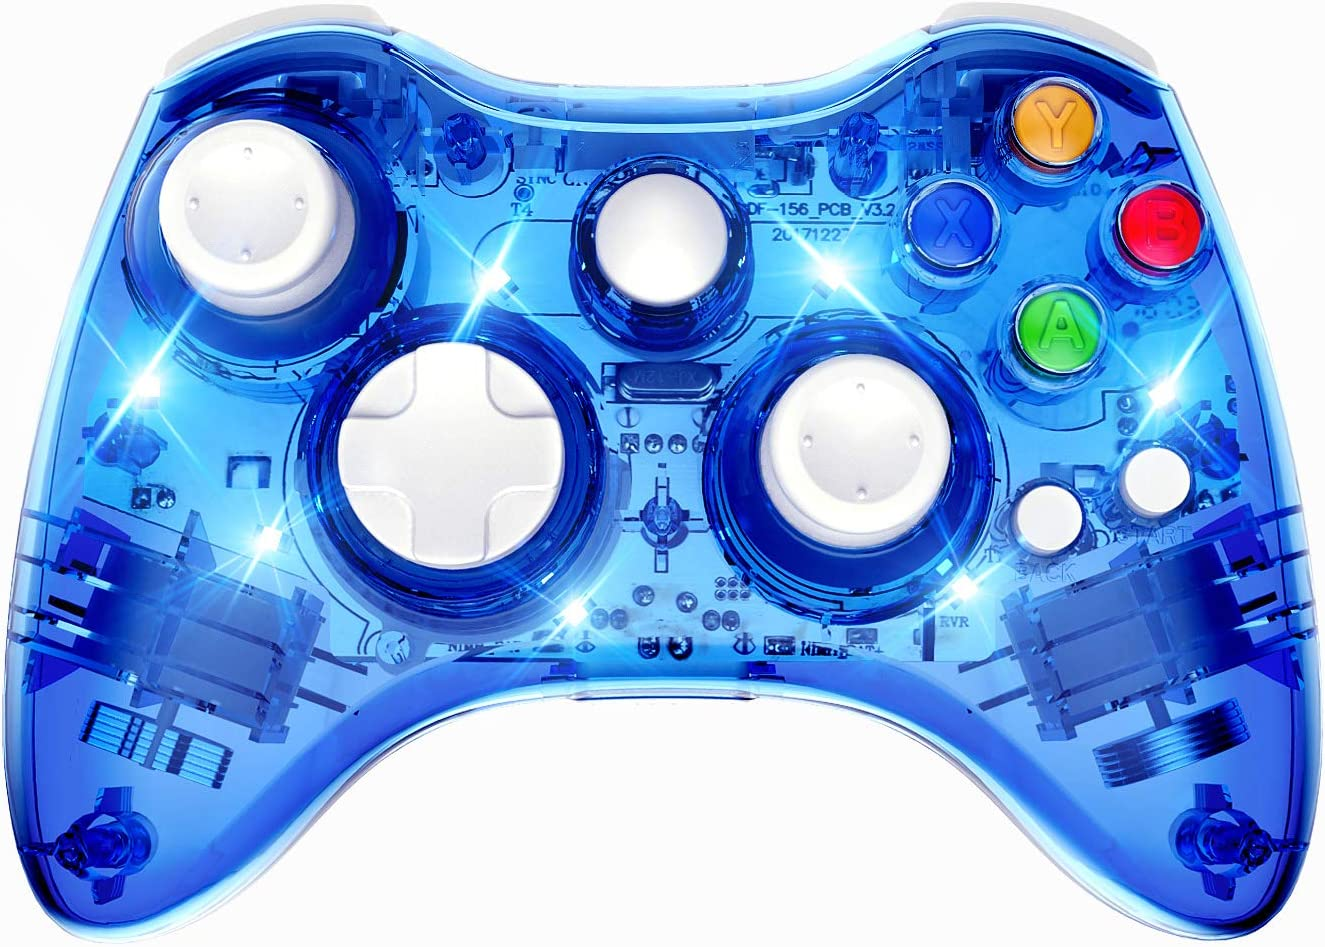 PAWHITS Wireless Xbox 360 Controller Double Motor Vibration Wireless Gamepad Gaming Joypad, Blue: Electronics